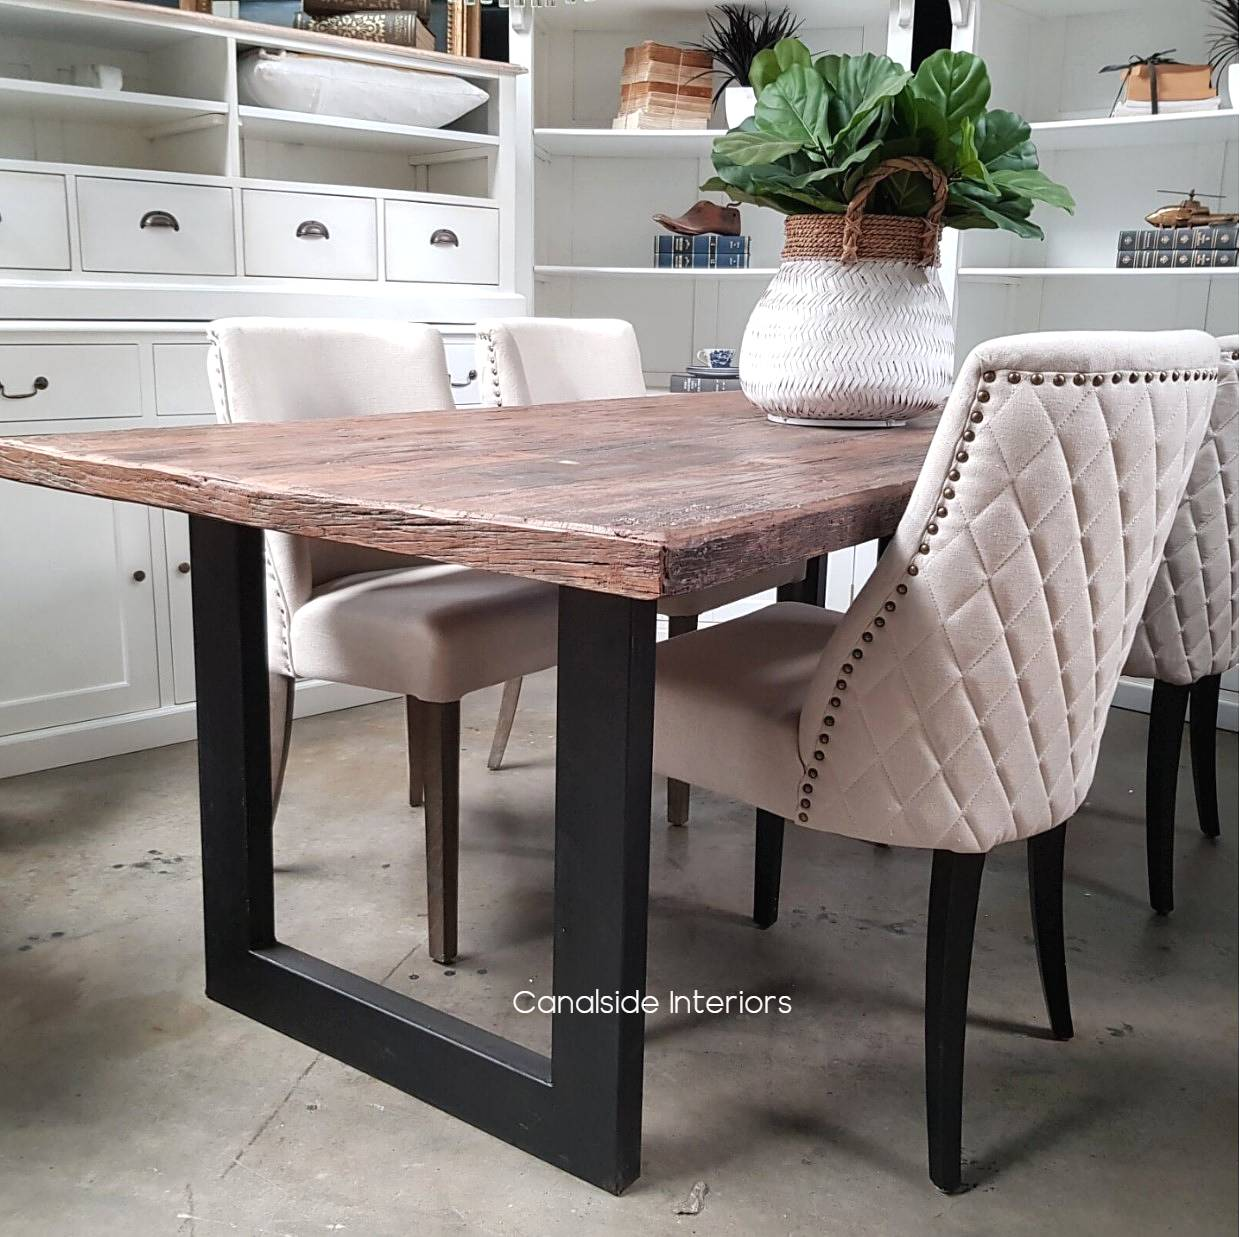 Washington Dining Table with Reclaimed Wood Top  INDUSTRIAL RUSTIC Style, CAFE FURNITURE, TABLES, TABLES Dining Tables, CAFE FURNITURE Table Tops & Tables